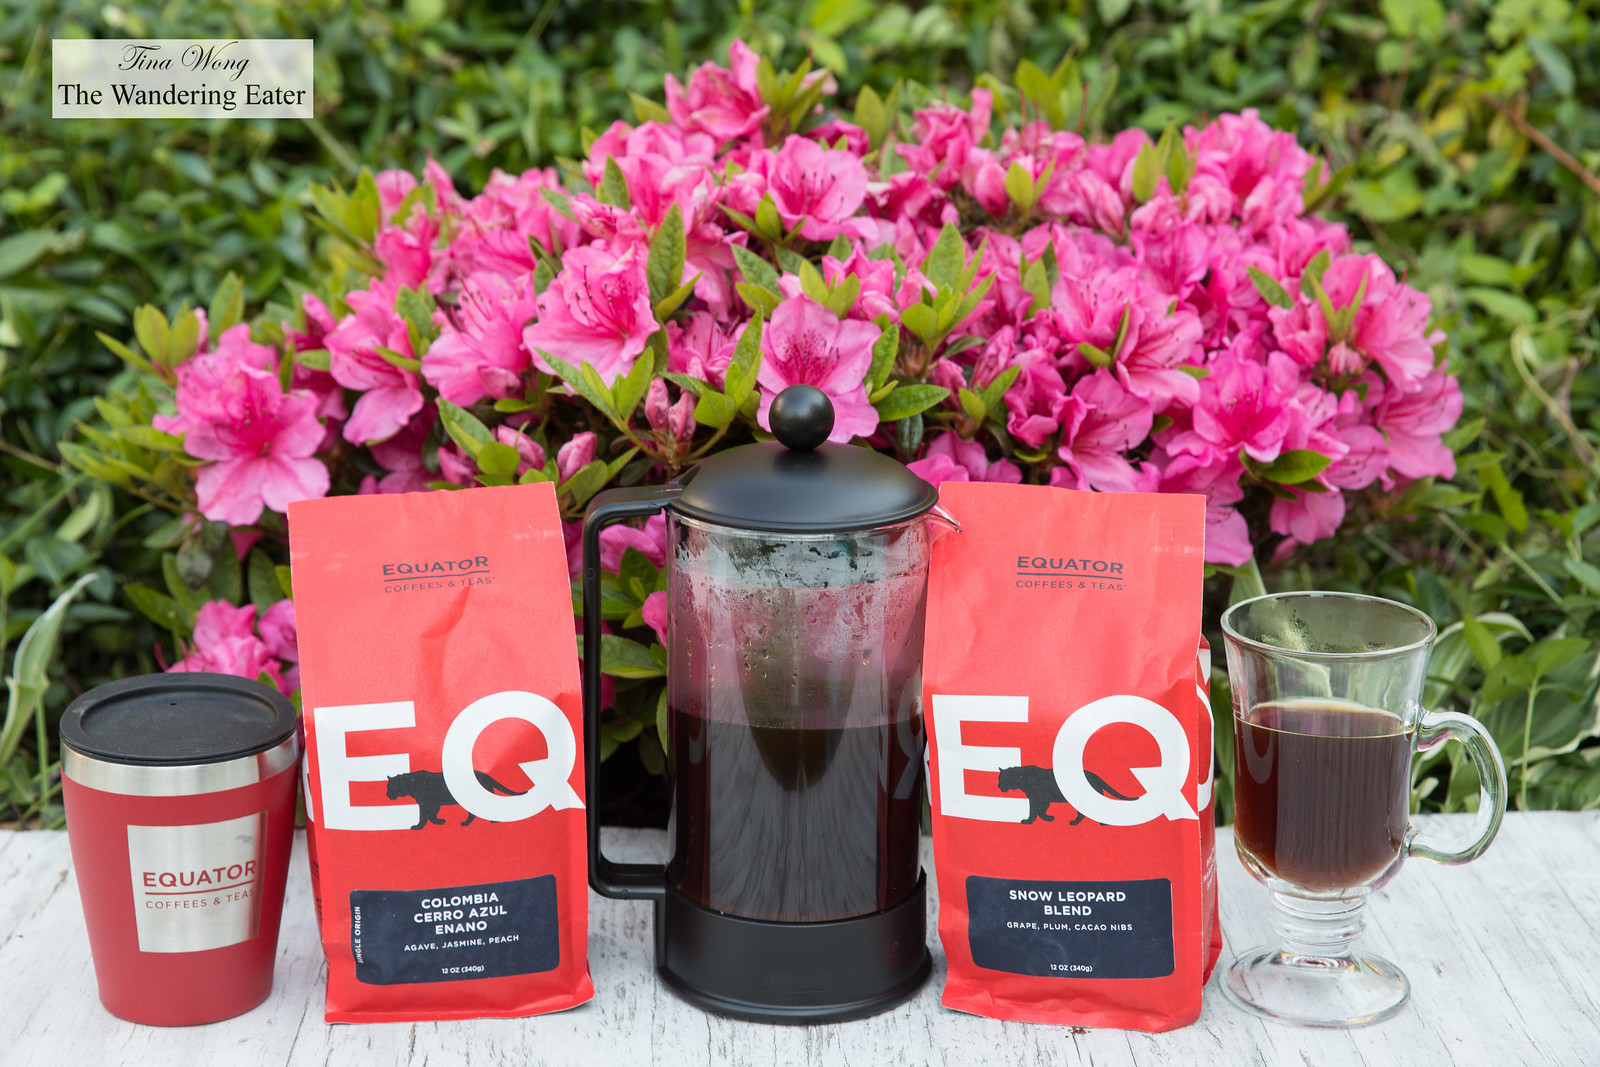 Equator Coffee beans and French press